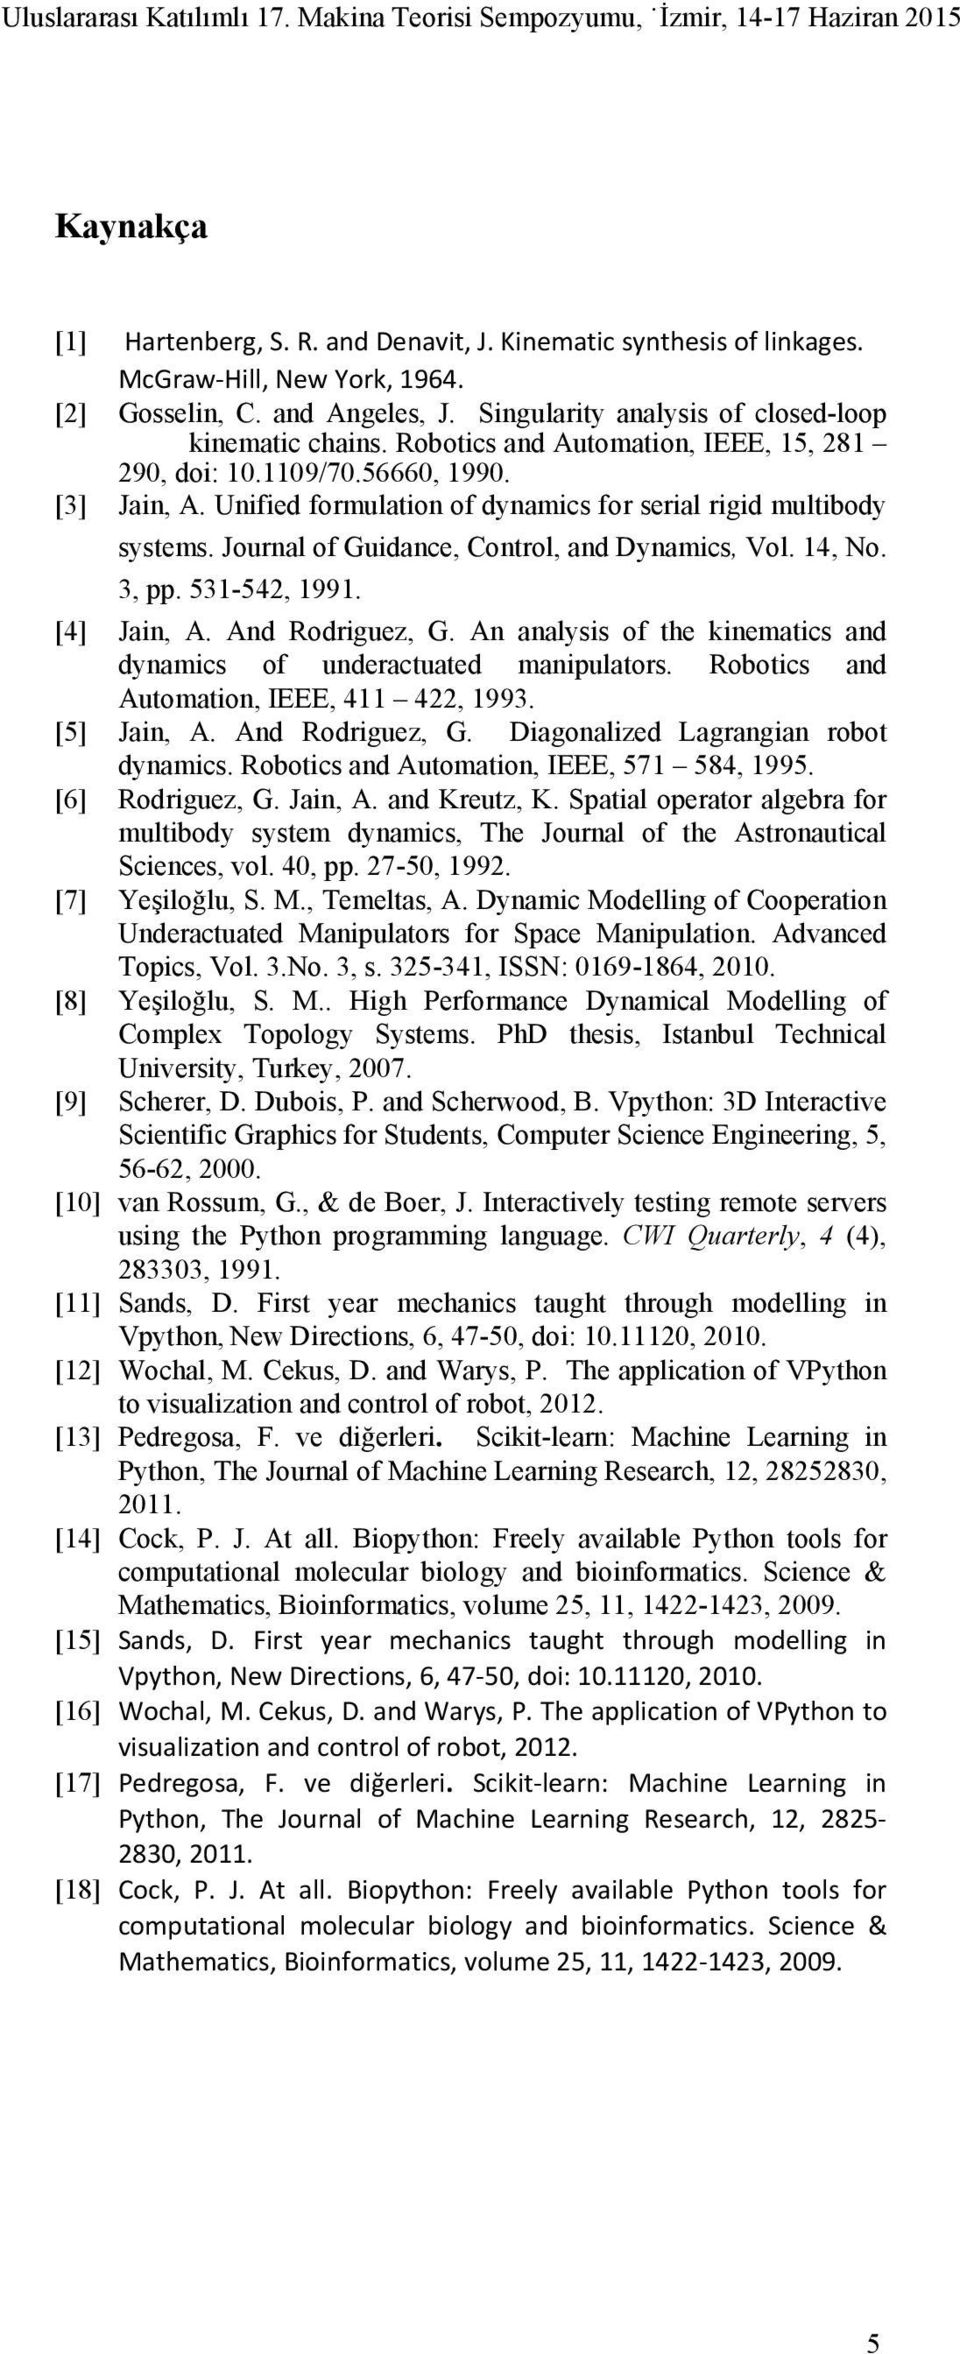 Journal of Guidance, Control, and Dynamics, Vol. 14, No. 3, pp. 531-542, 1991. [4] Jain, A. And Rodriguez, G. An analysis of the kinematics and dynamics of underactuated manipulators.